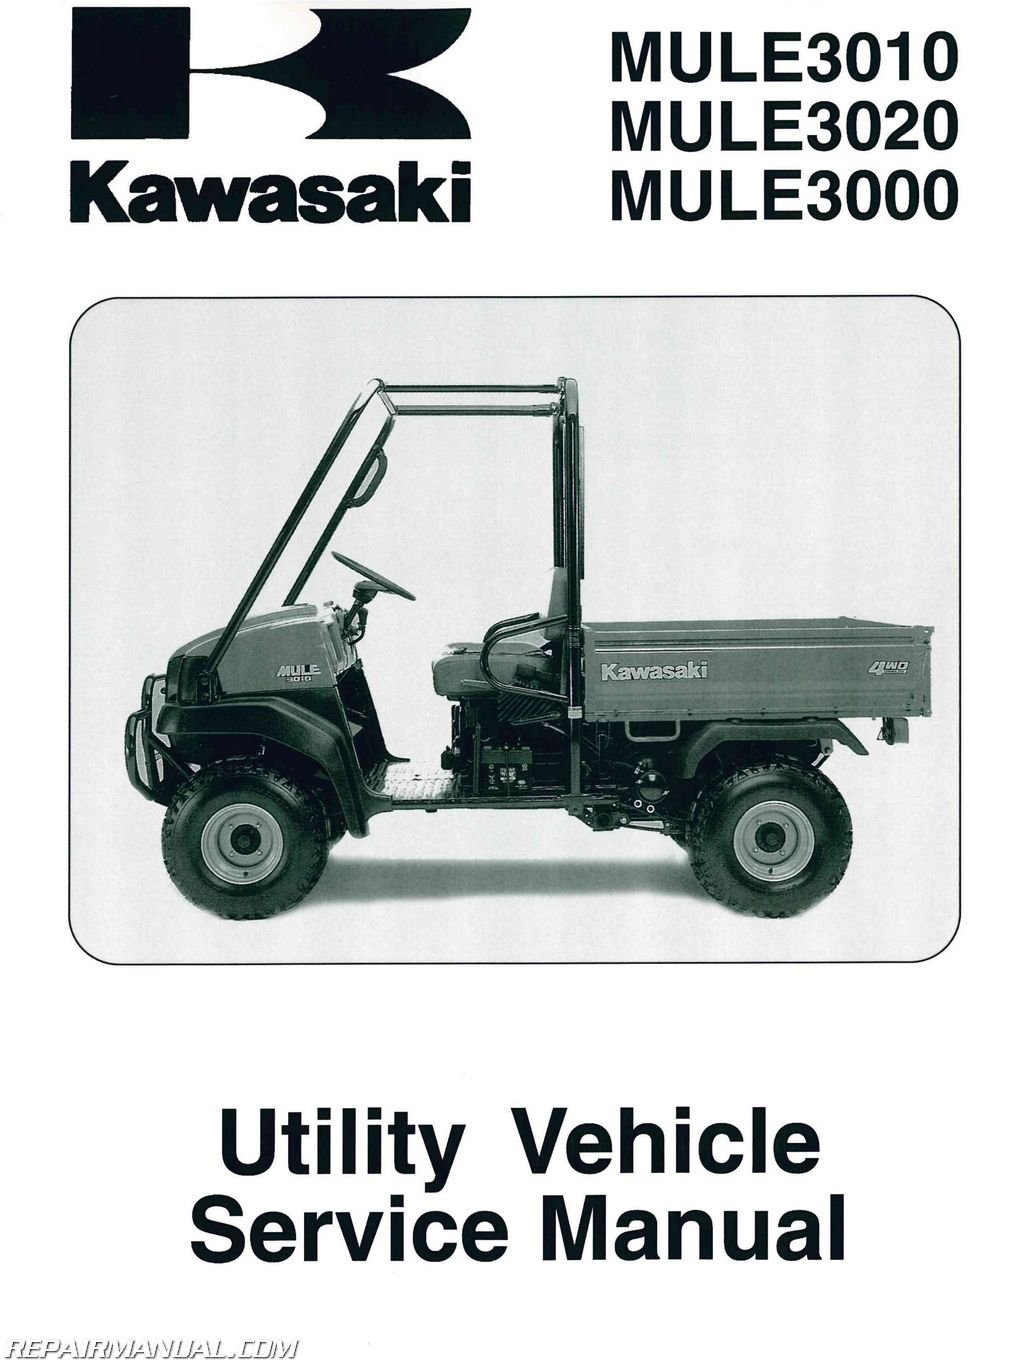 99924-1262-08 2001-2008 Kawasaki KAF620 Mule 3000 3010 3020 Service Manual:  Manufacturer: Amazon.com: Books